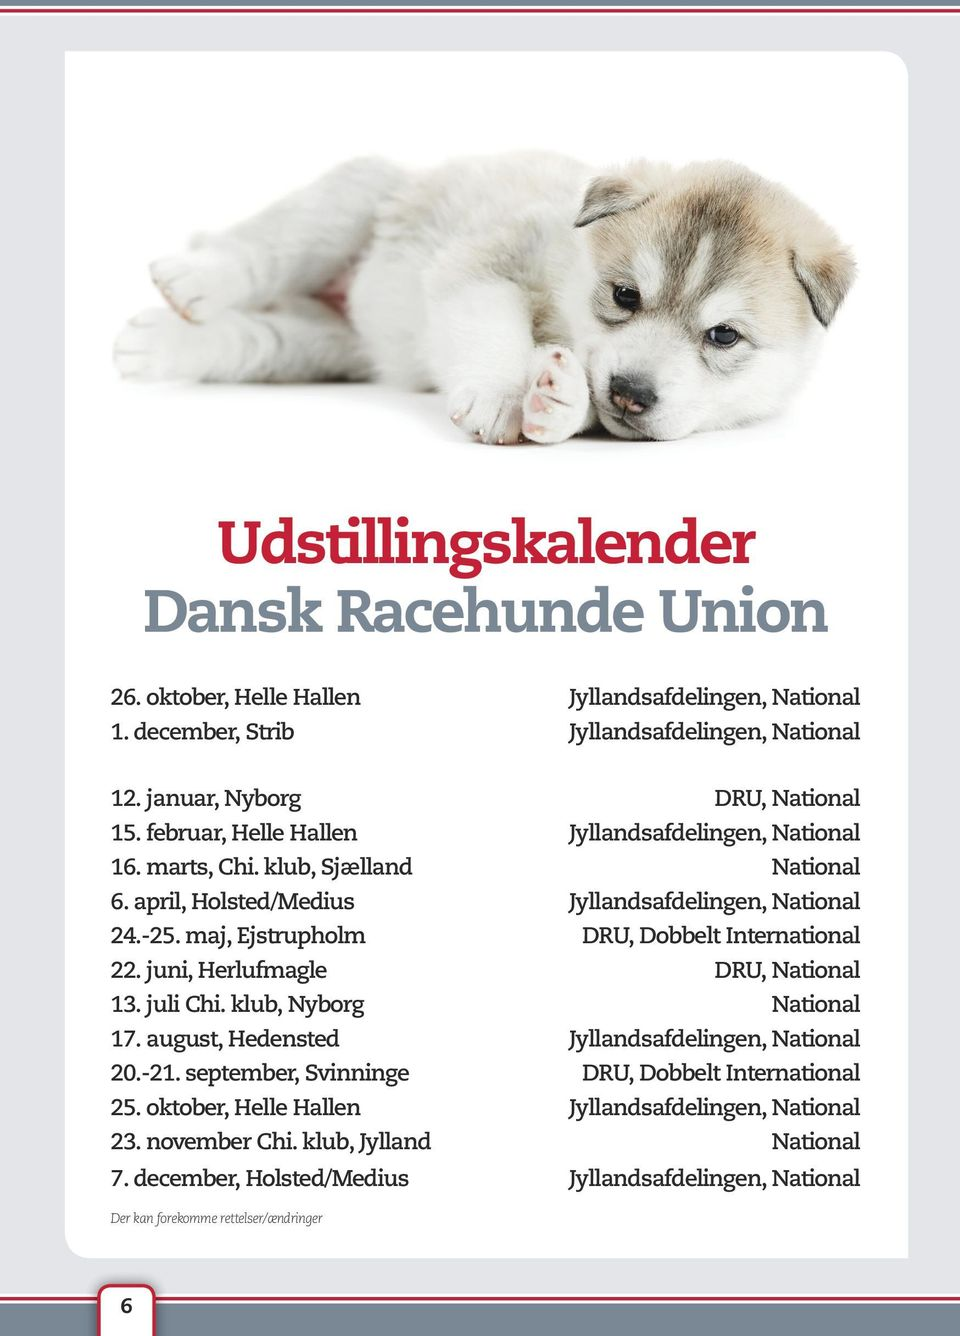 maj, Ejstrupholm DRU, Dobbelt International 22. juni, Herlufmagle DRU, National 13. juli Chi. klub, Nyborg National 17. august, Hedensted Jyllandsafdelingen, National 20.-21.